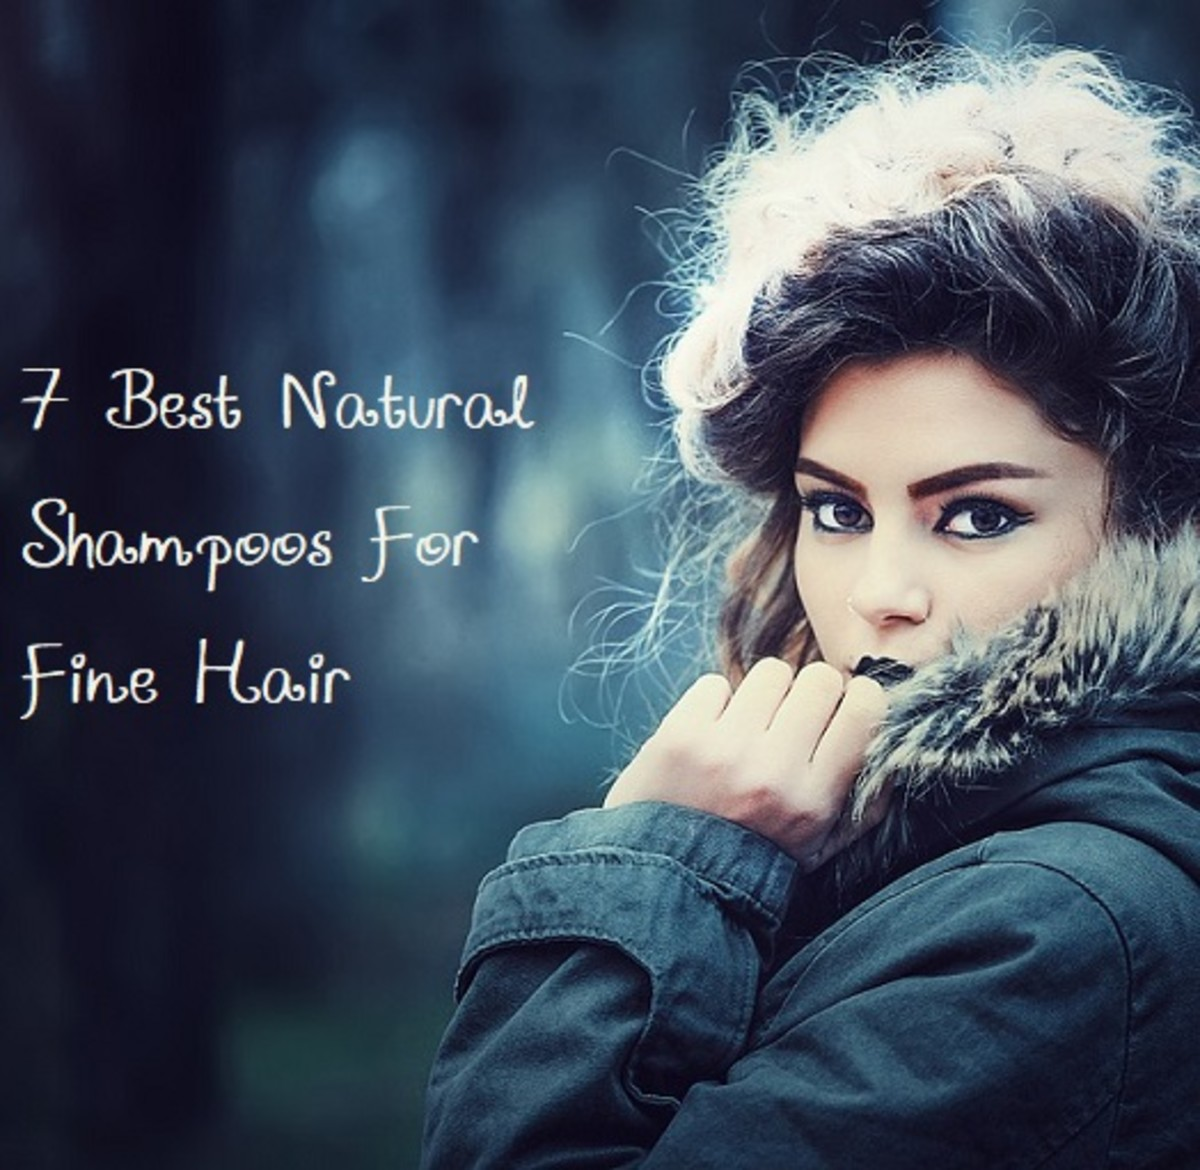 7 Best Natural Shampoos for Fine Hair